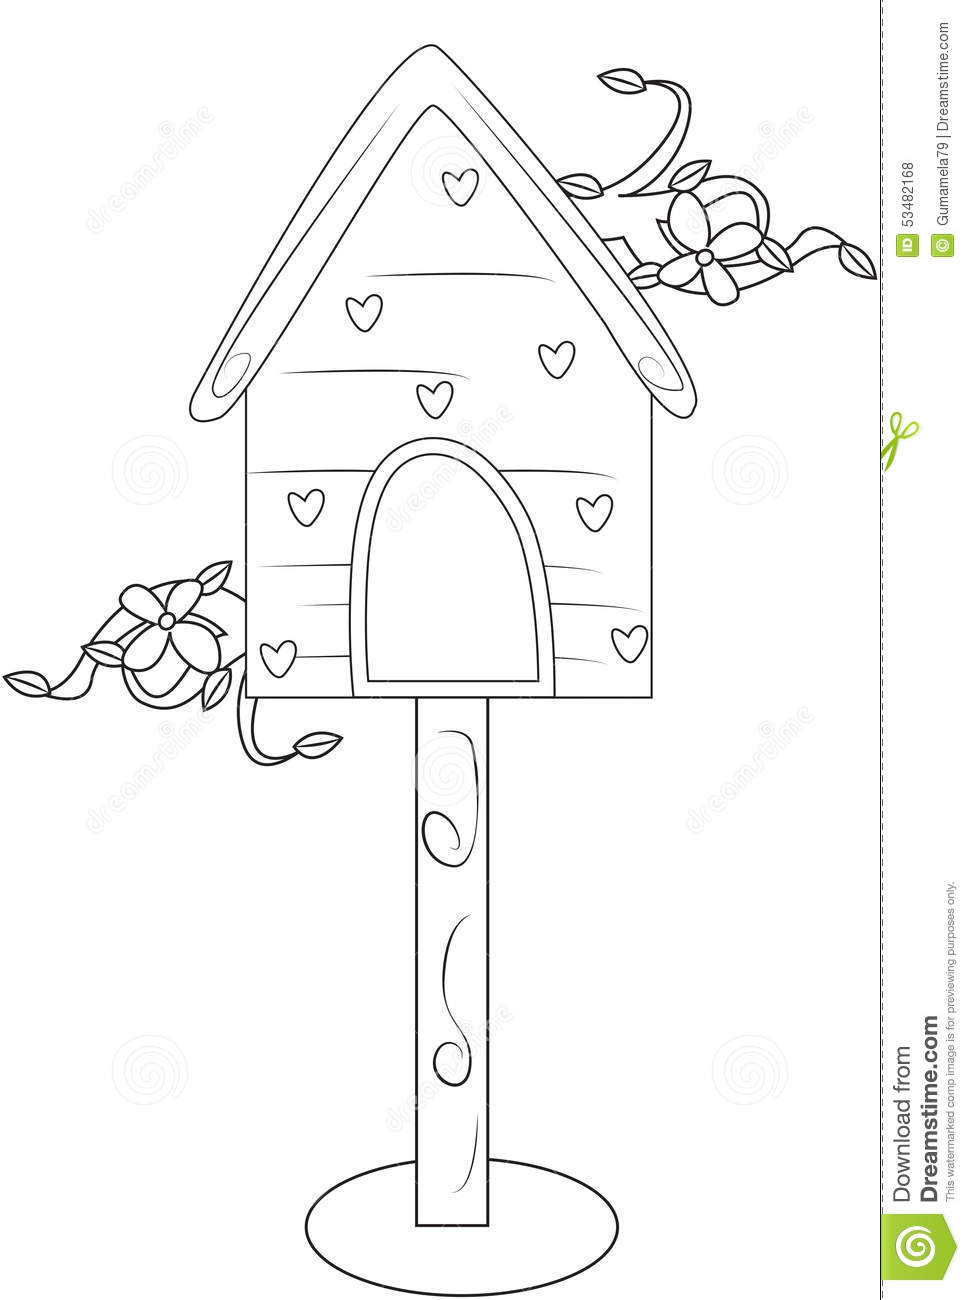 Bird's house coloring page stock illustration